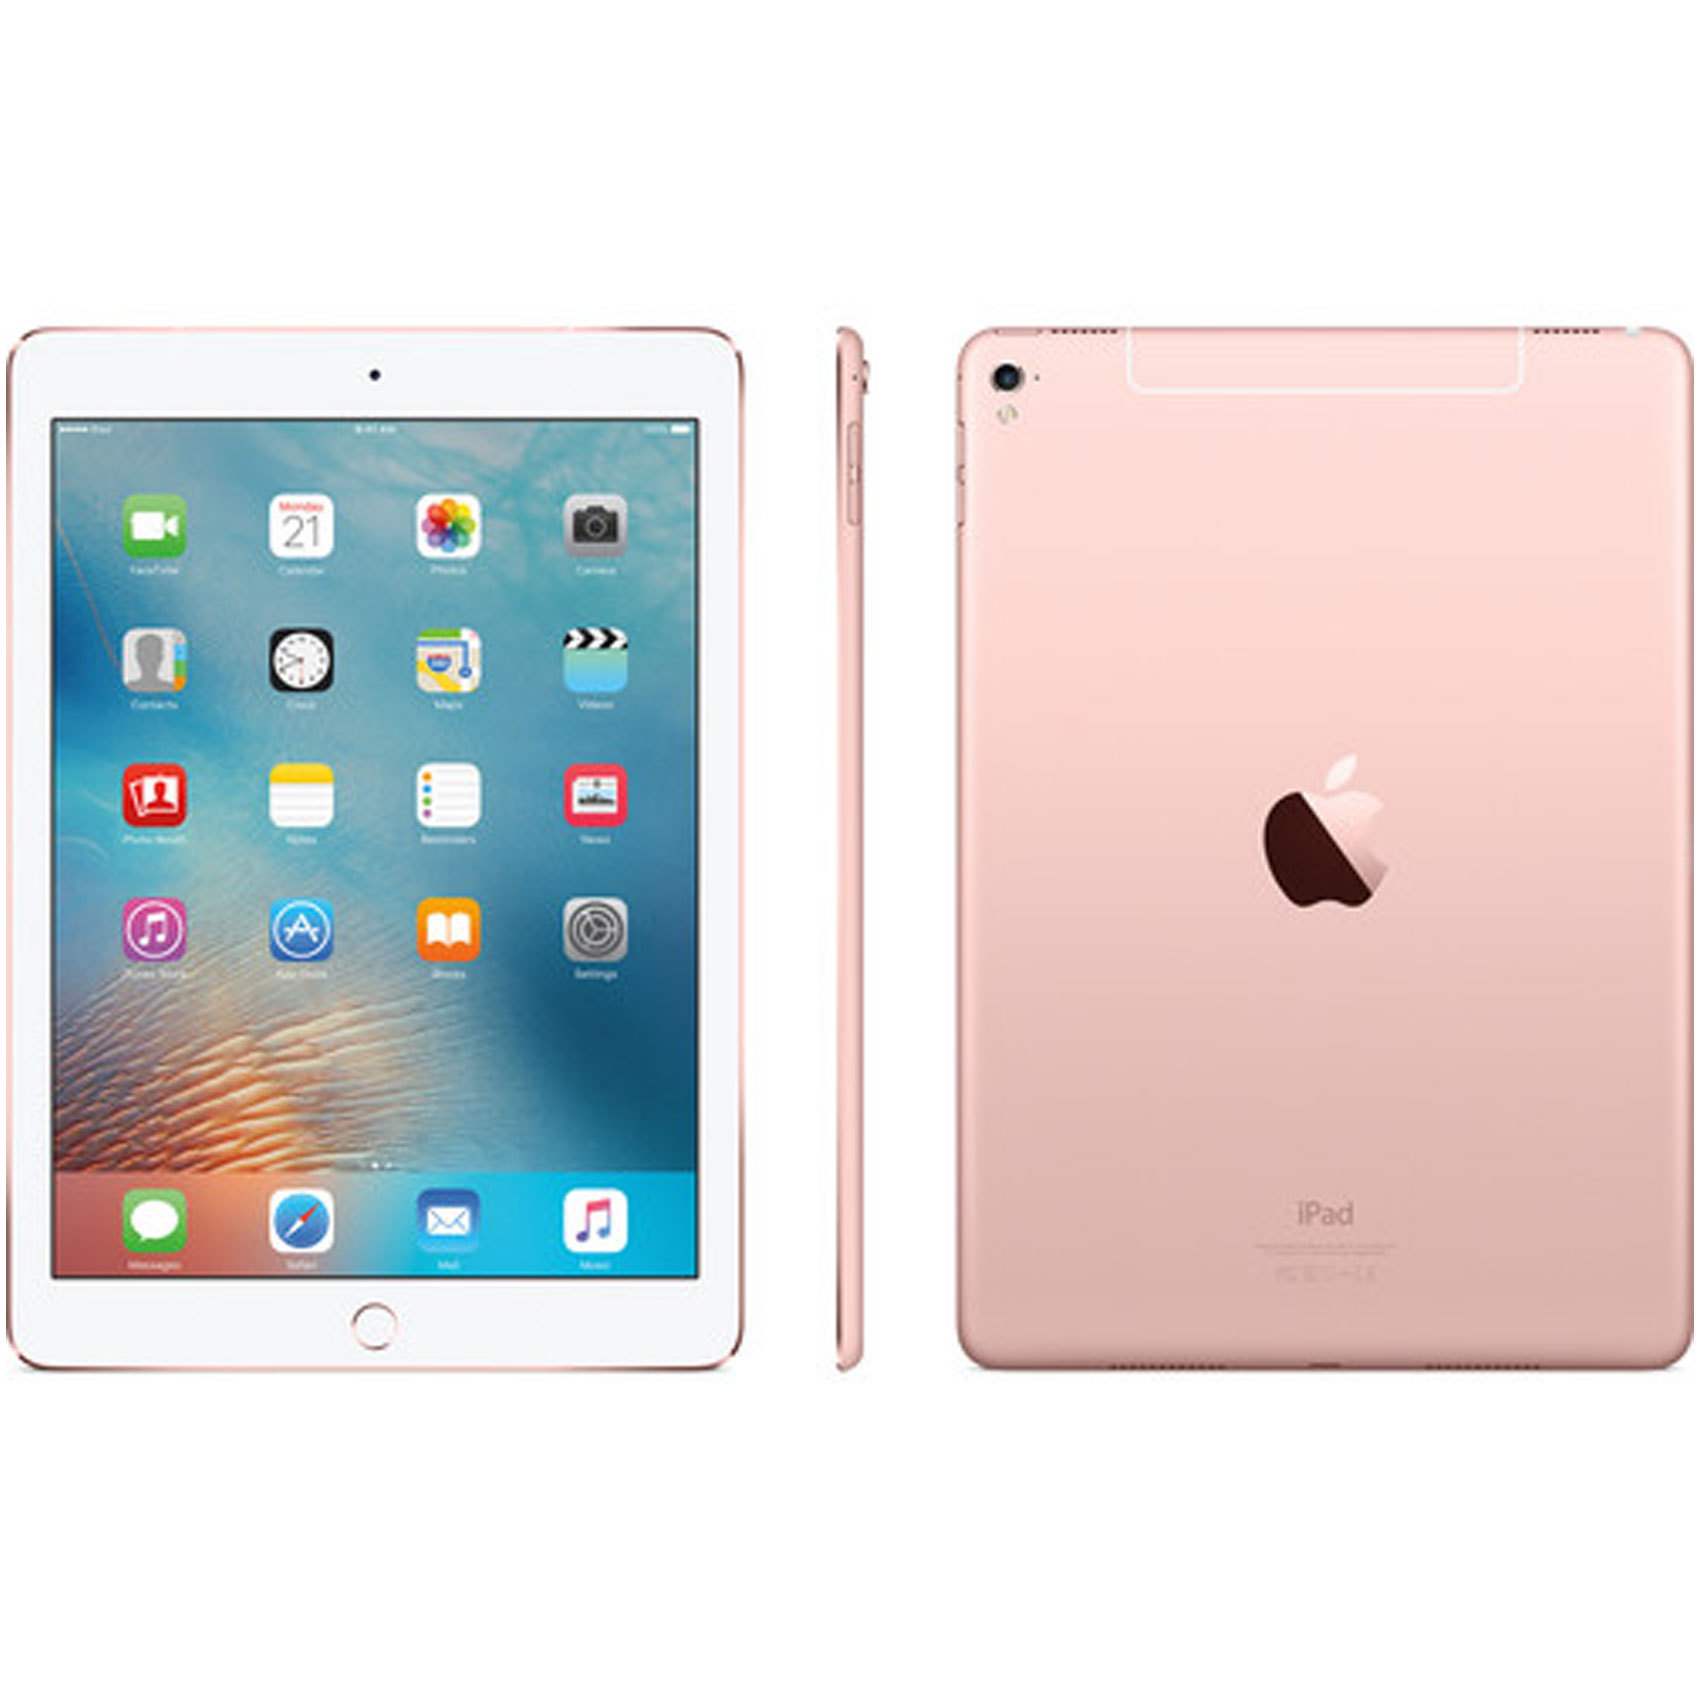 APPLE IPAD PRO WIFI+4G 32GB RG 9.7